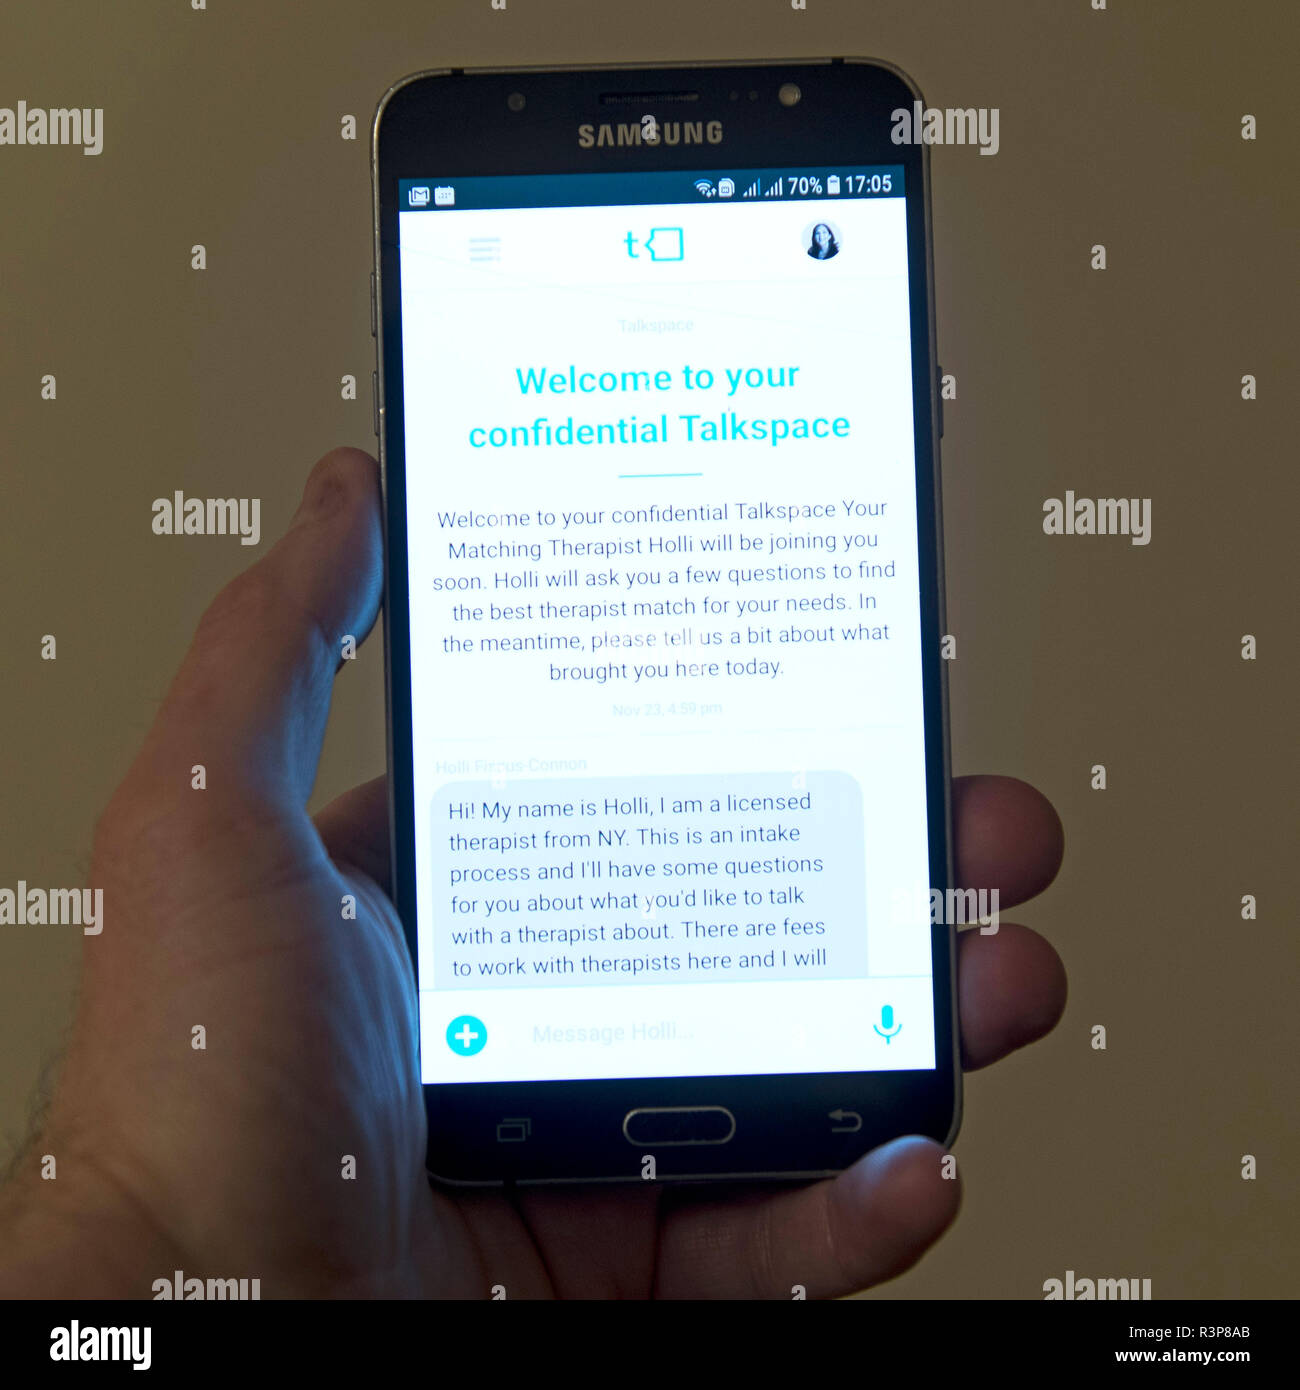 Talkspace app is pictured on an Android smartphone app in Warwick, UK. Nov 23, 2018. - Stock Image